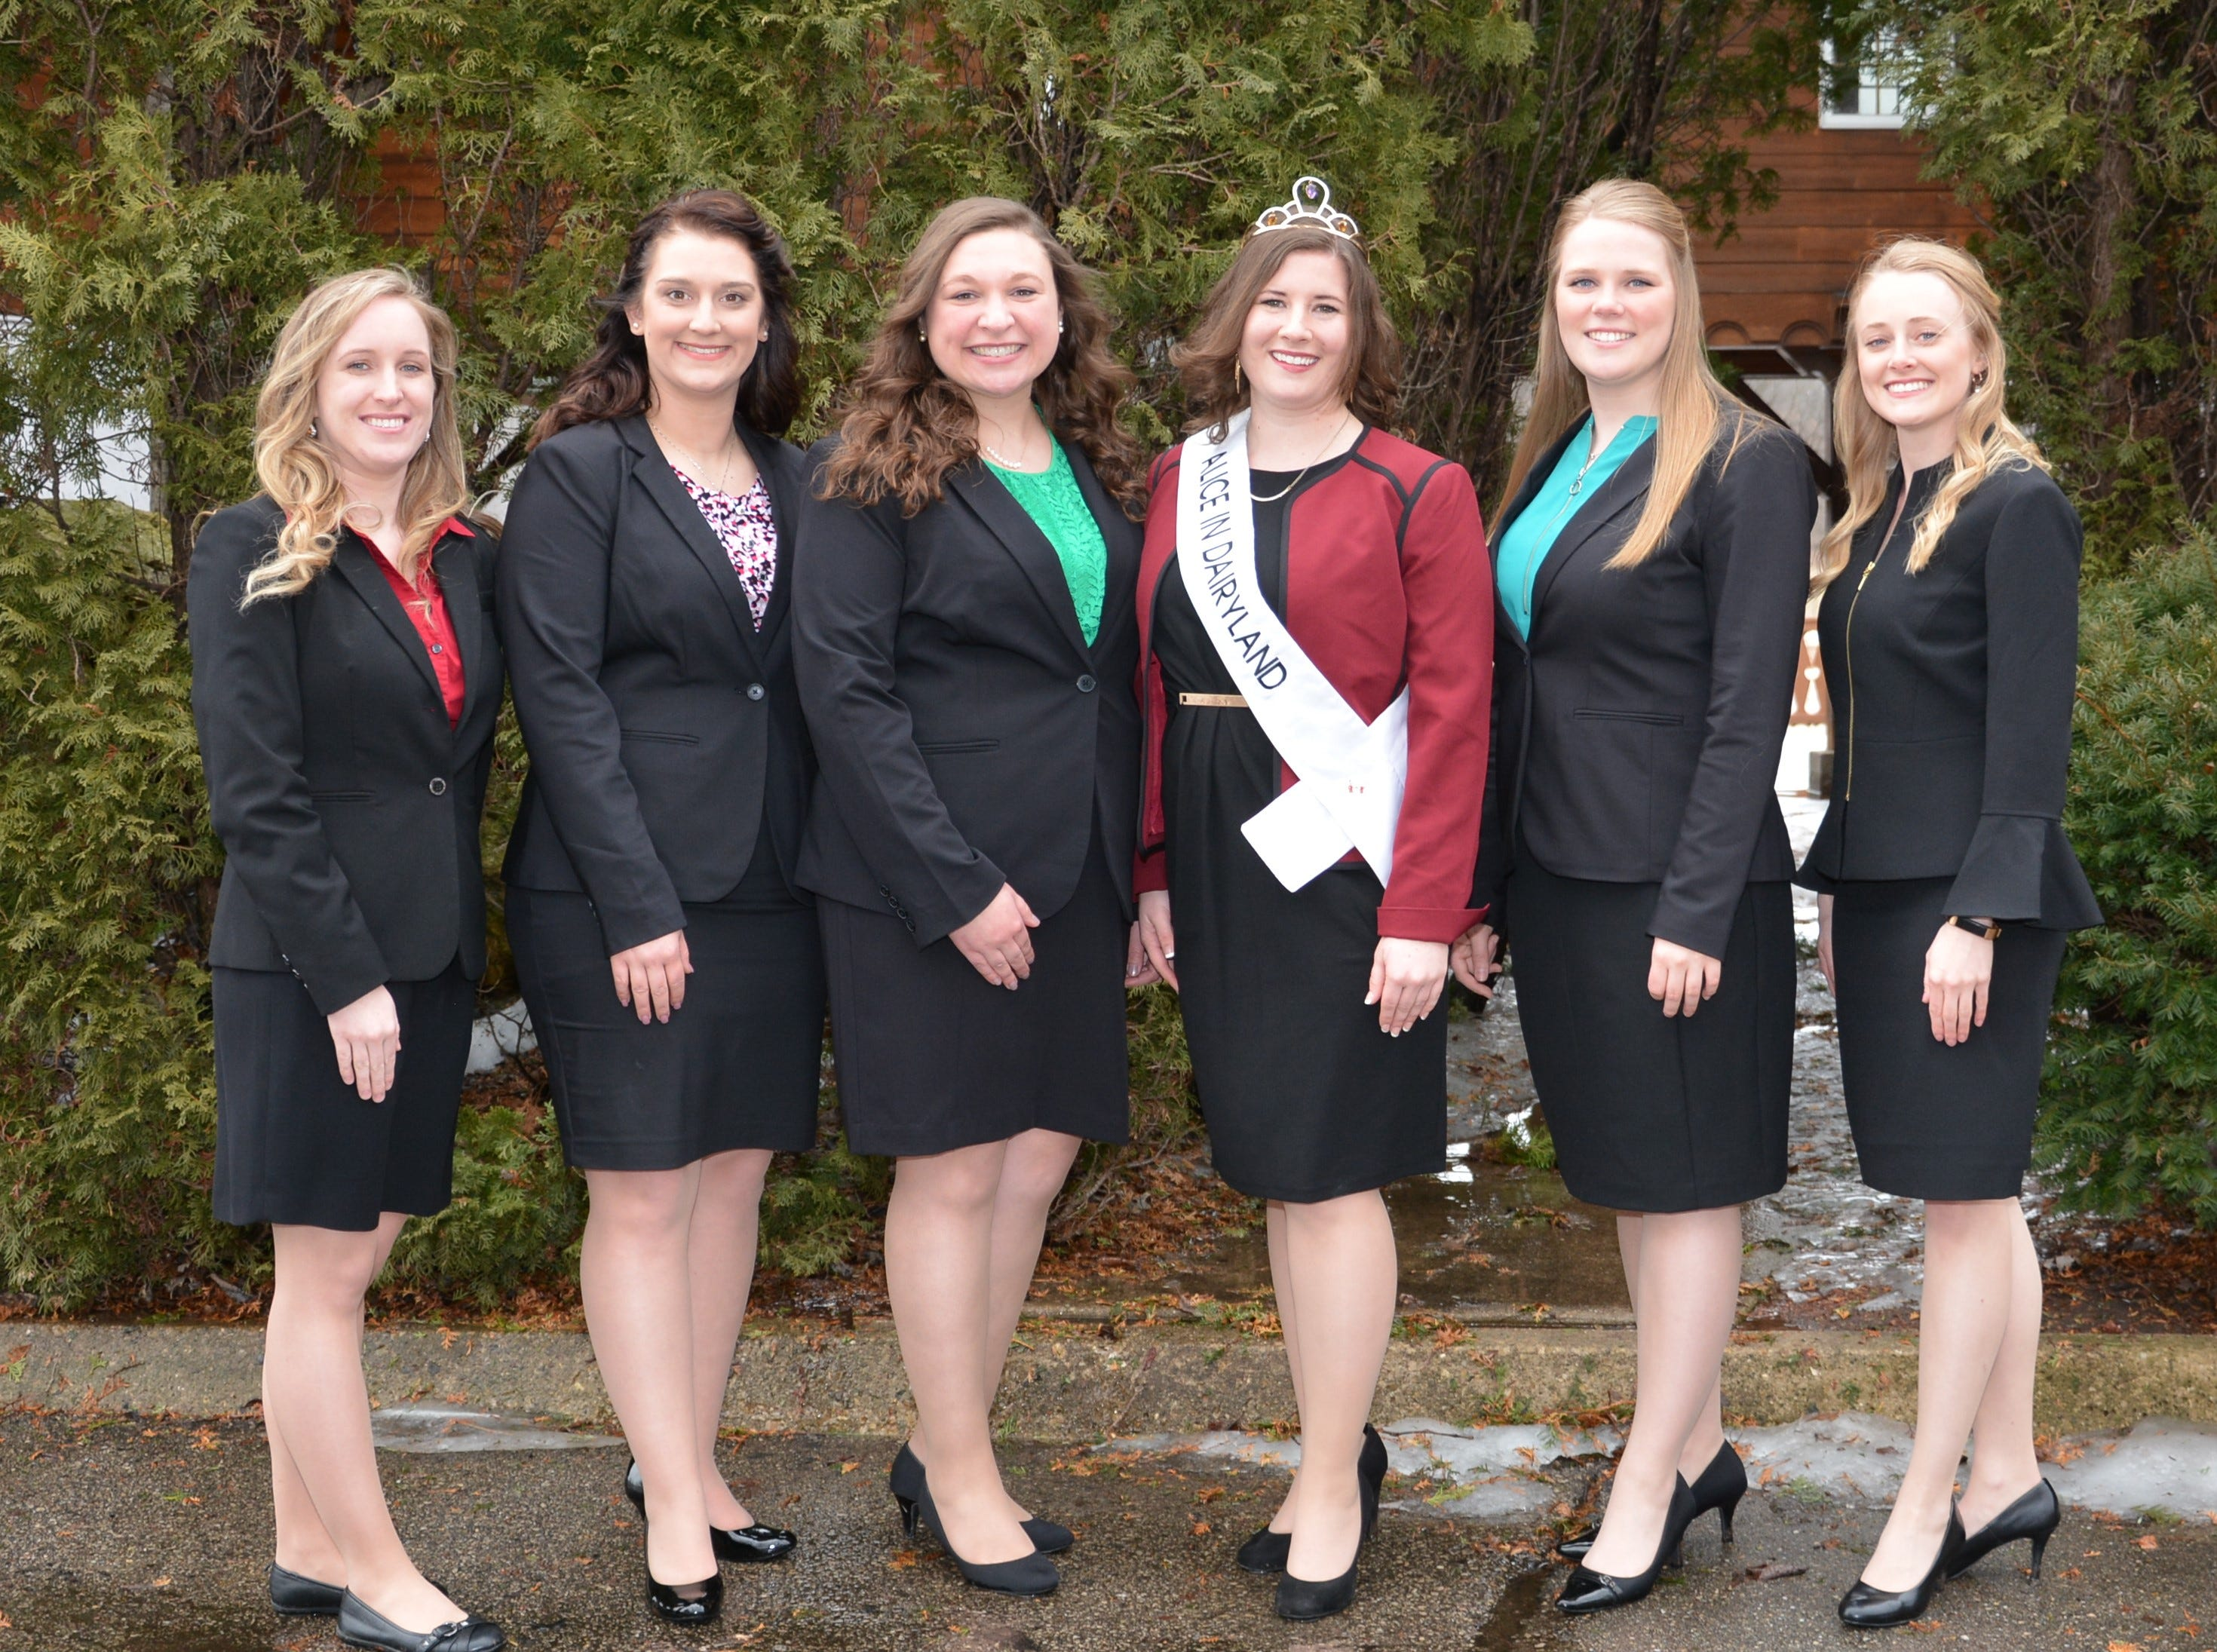 Reigning Alice in Dairyland Kaitlyn Riley is joined by candidates vying for the title of the 72nd popular ag ambassador (from left) Sarah Achenbach, Cassandra Krull, Tess Zettle, Abigail Martin and Mariah Martin.